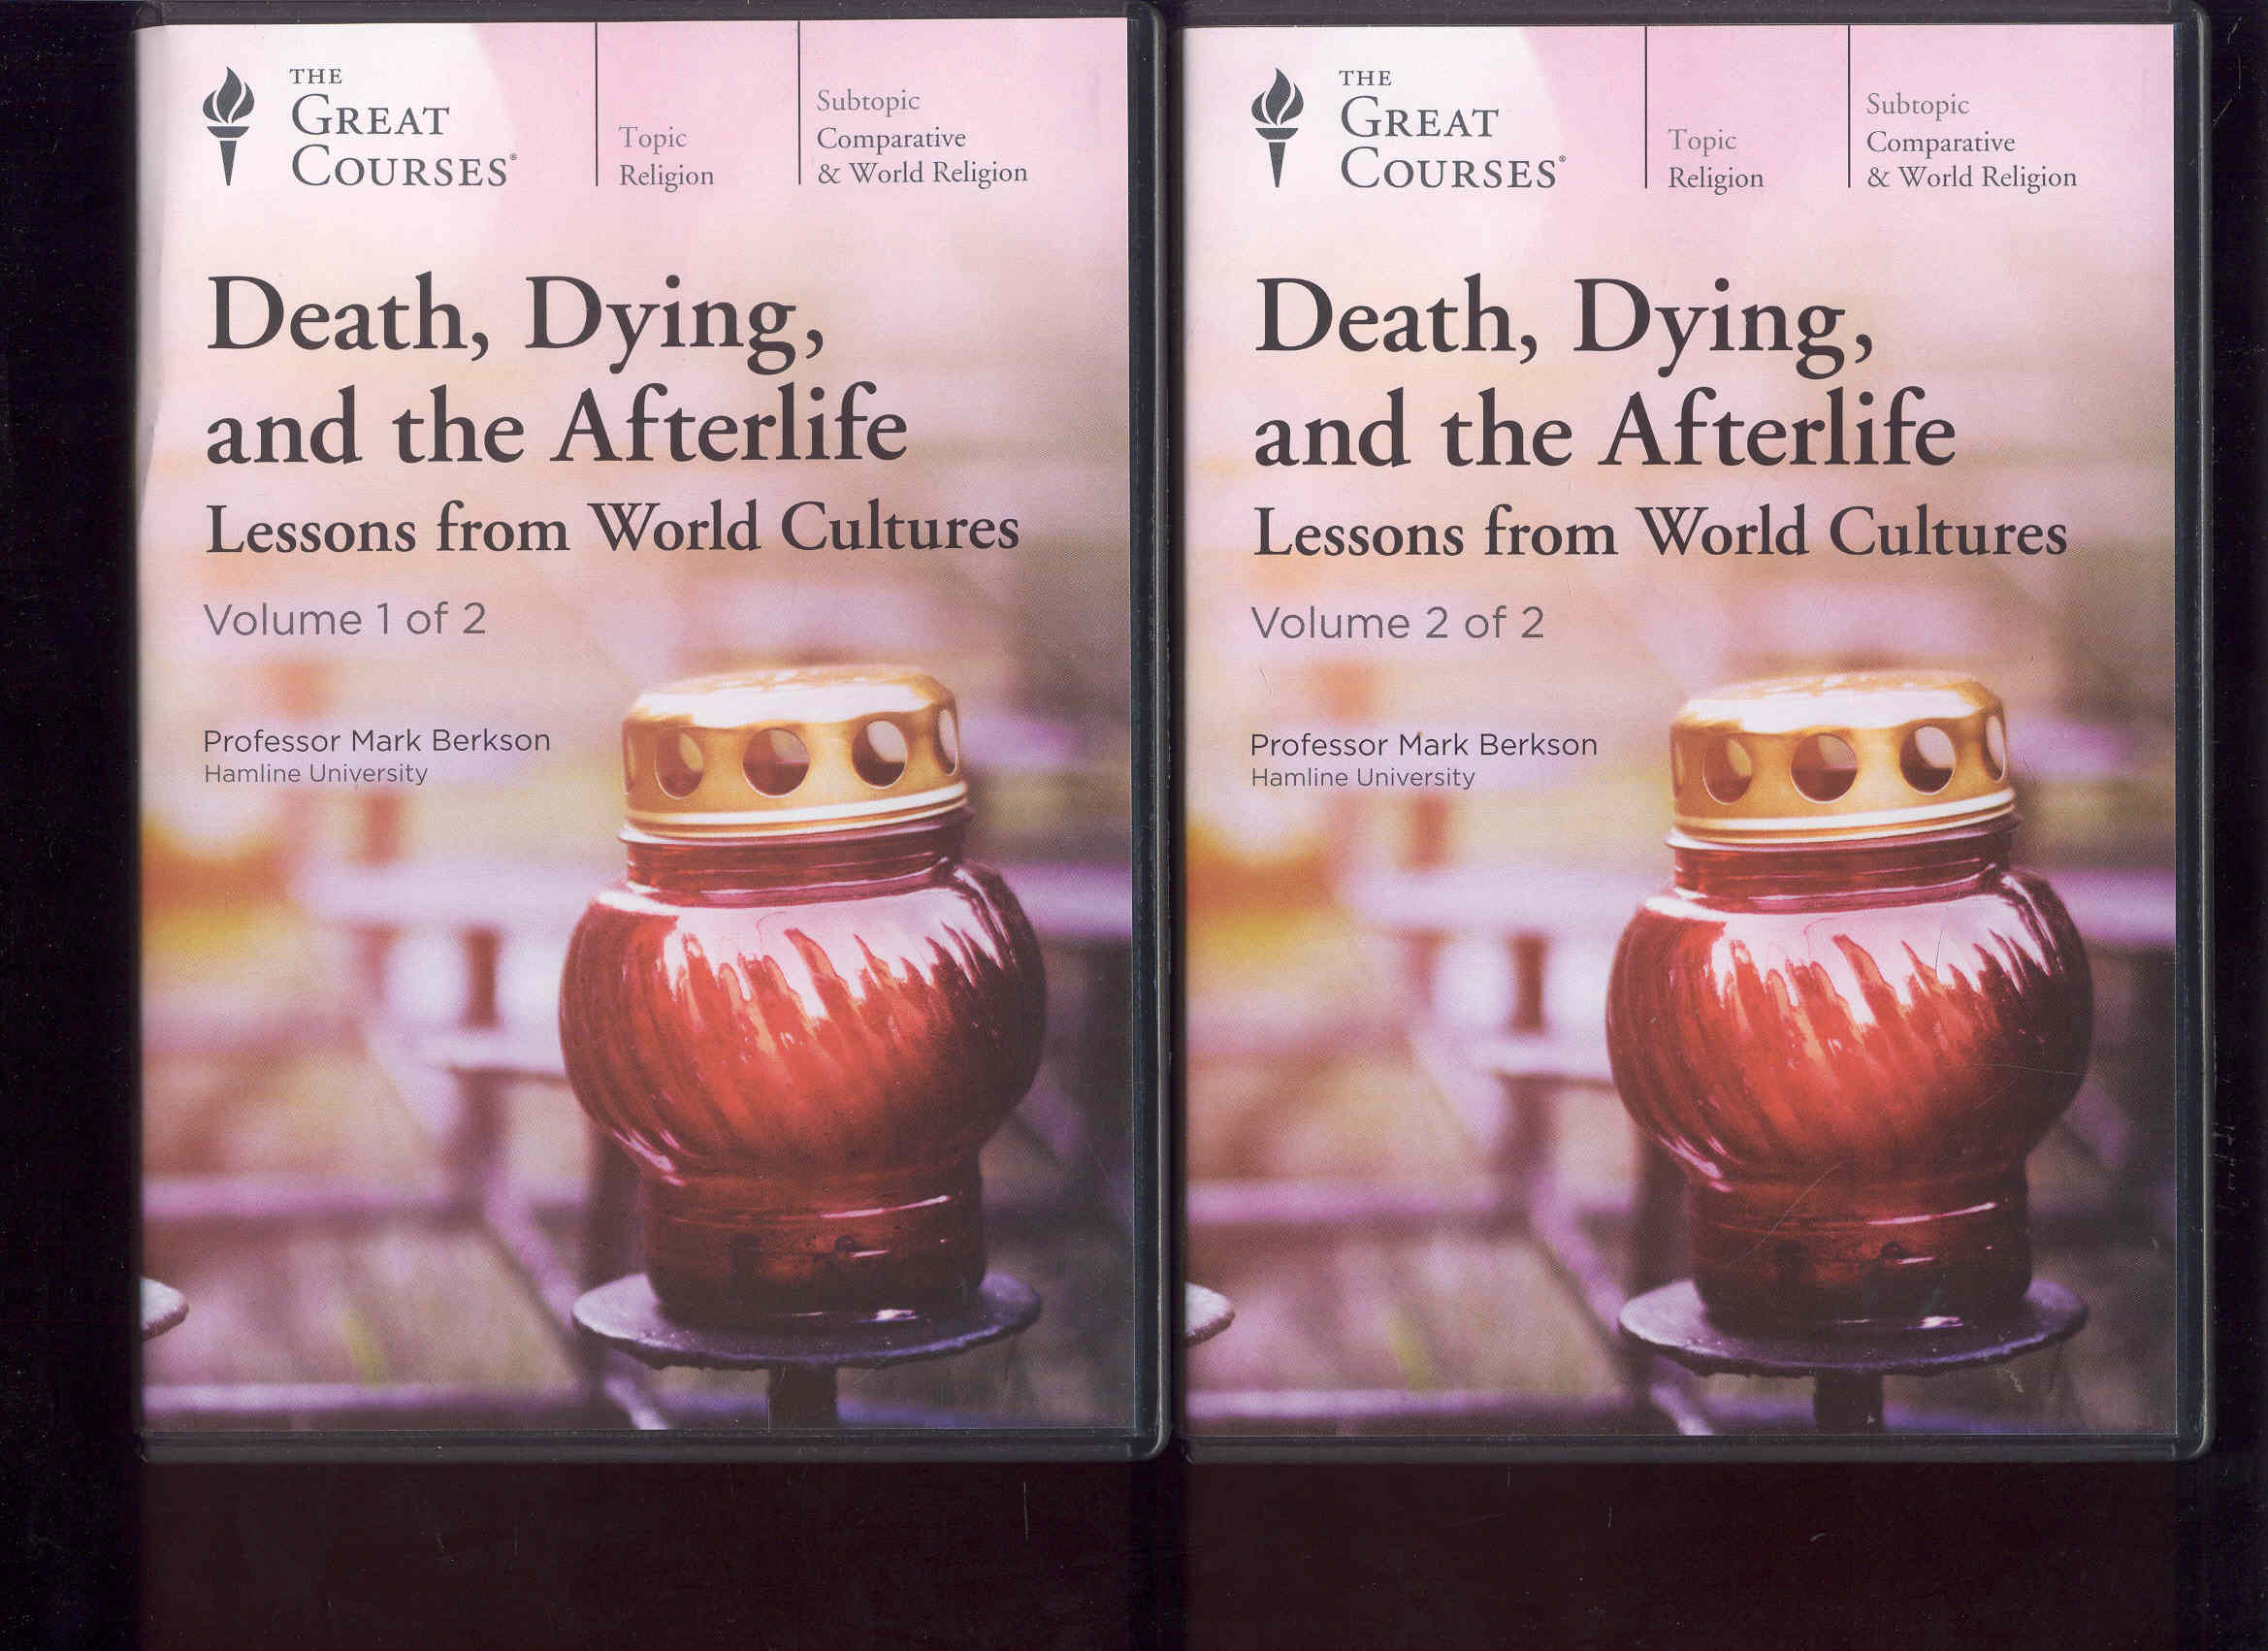 Image for Death, Dying, and the Afterlife: Lessons from World Cultures (Volumes 1 & 2)